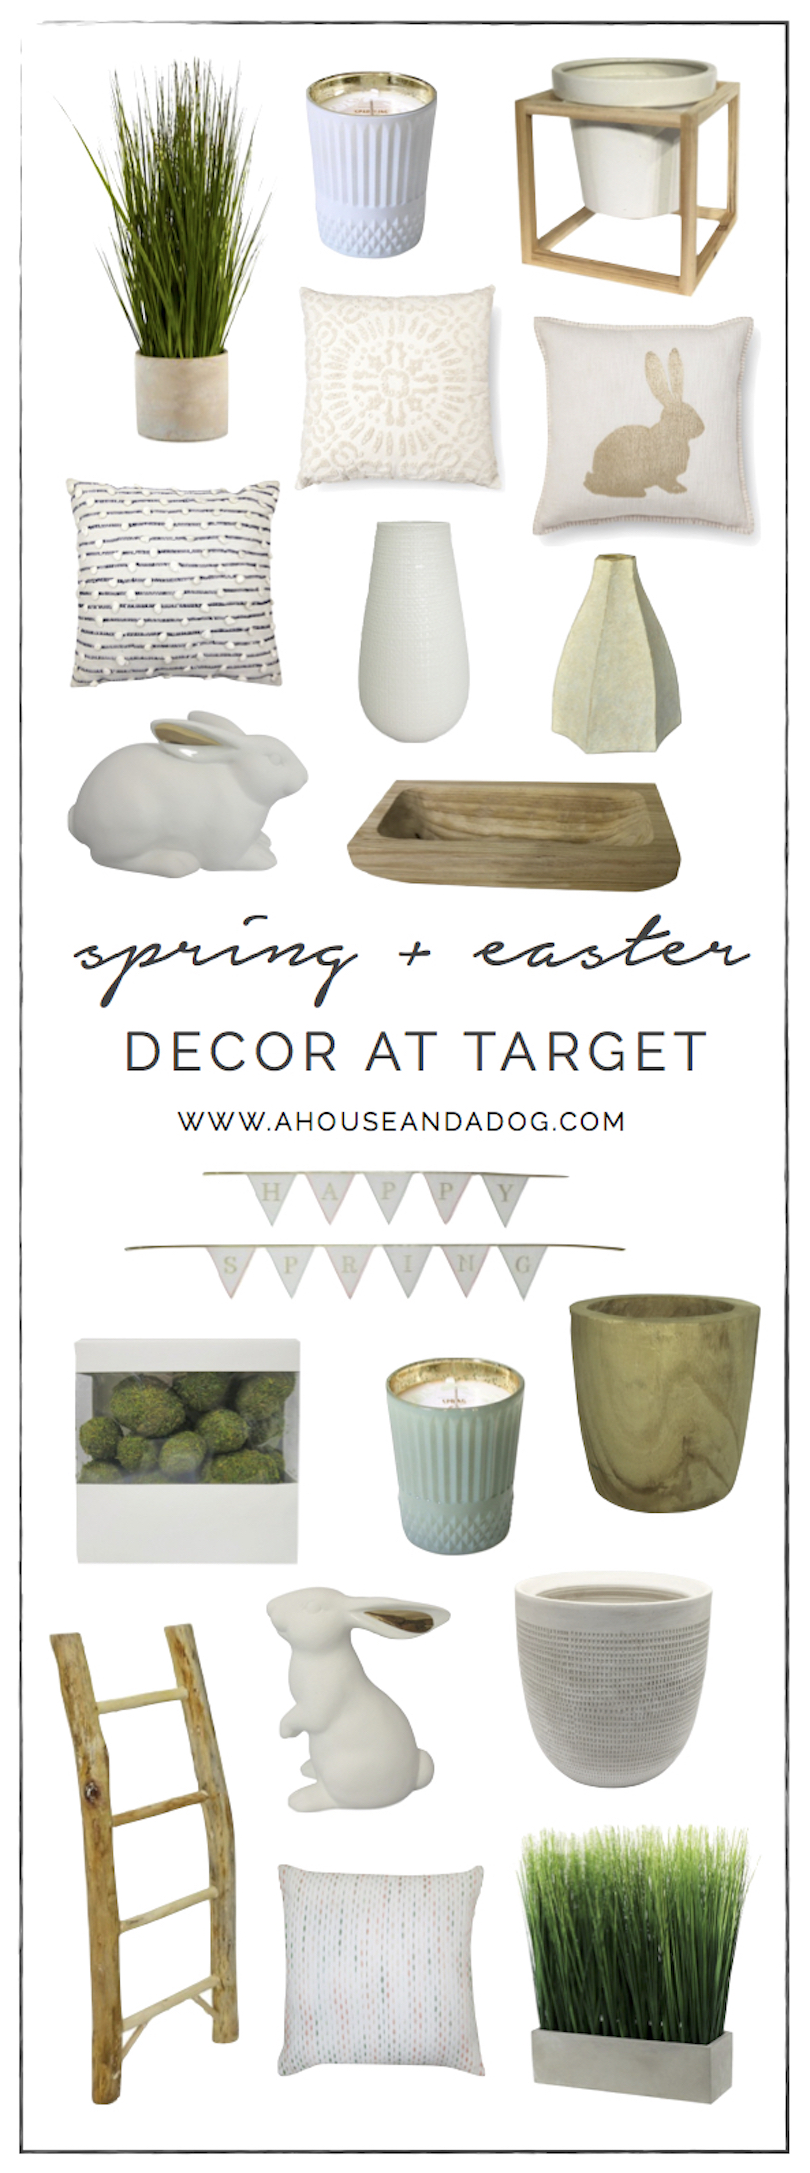 Spring + Easter Decor at Target | ahouseandadog.com